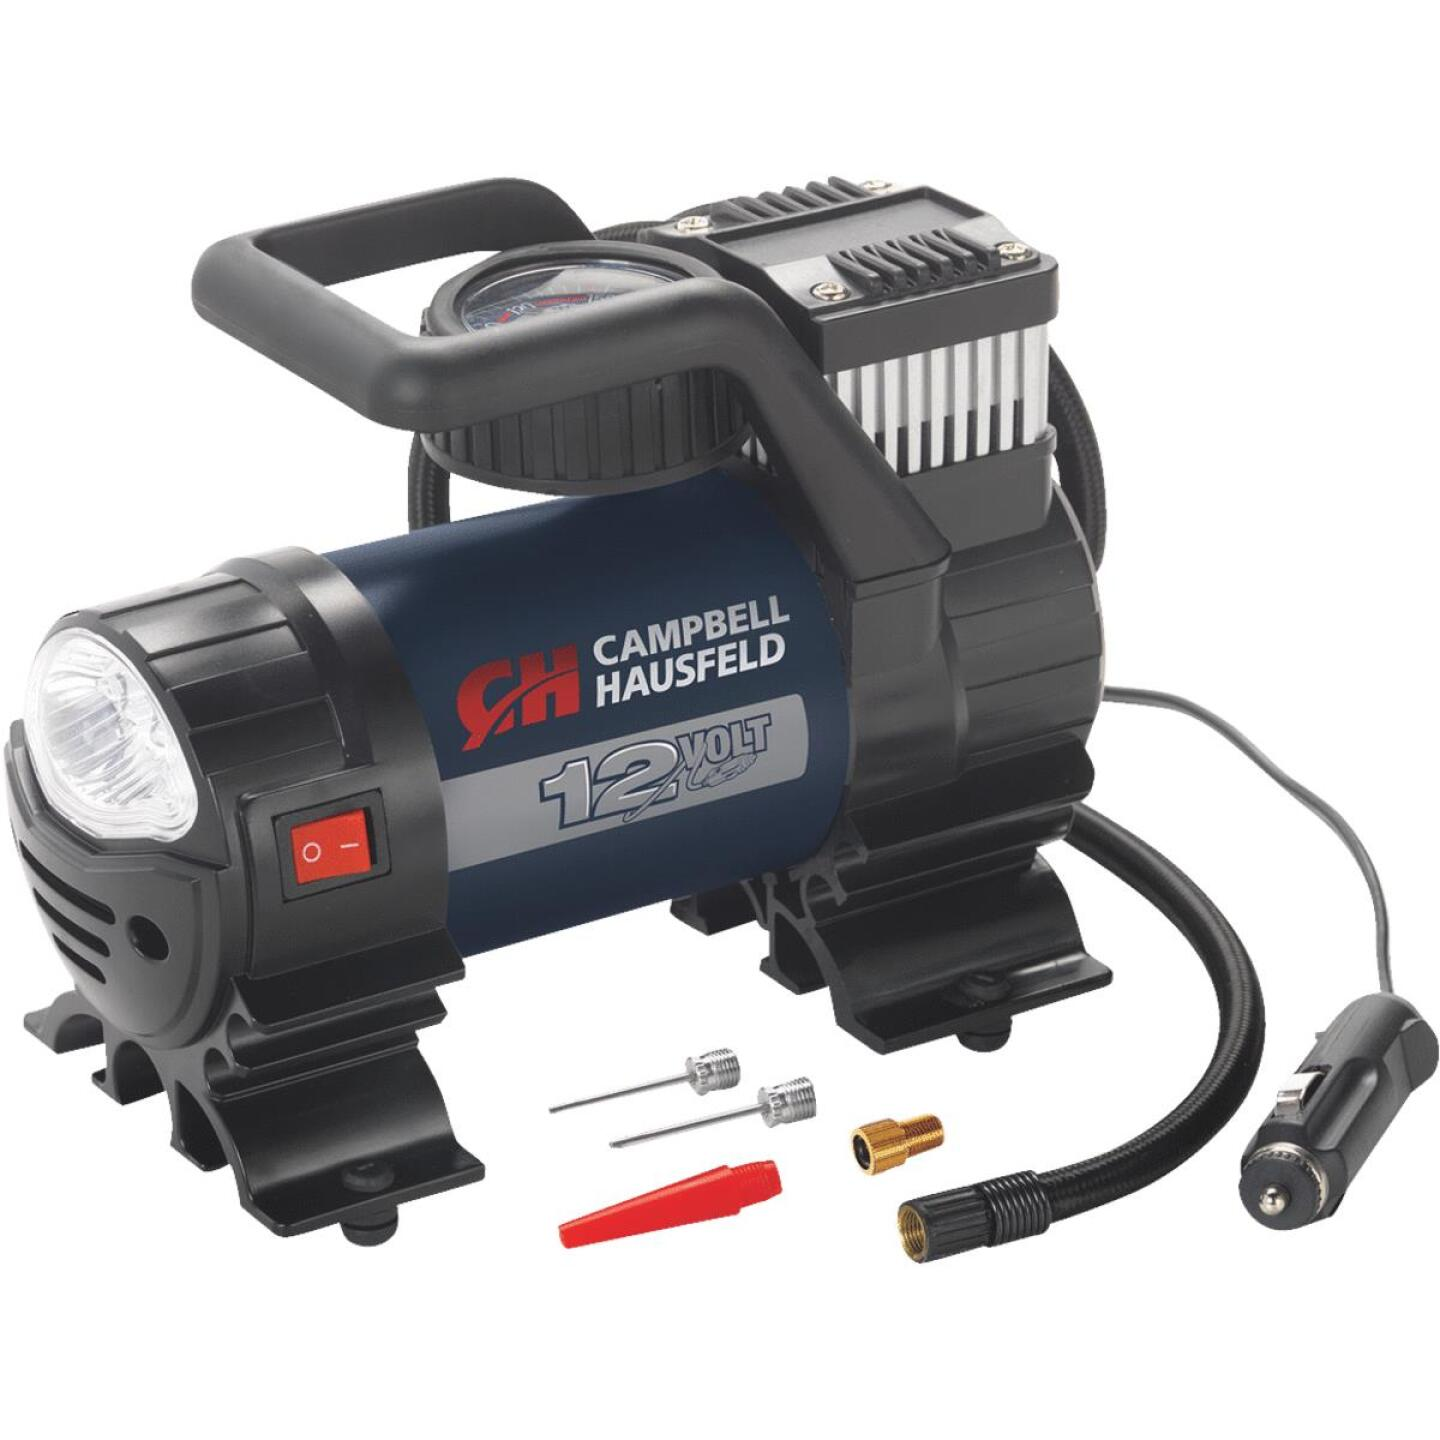 Campbell Hausfeld 12-Volt 150 psi Electric Inflator with Light Image 1